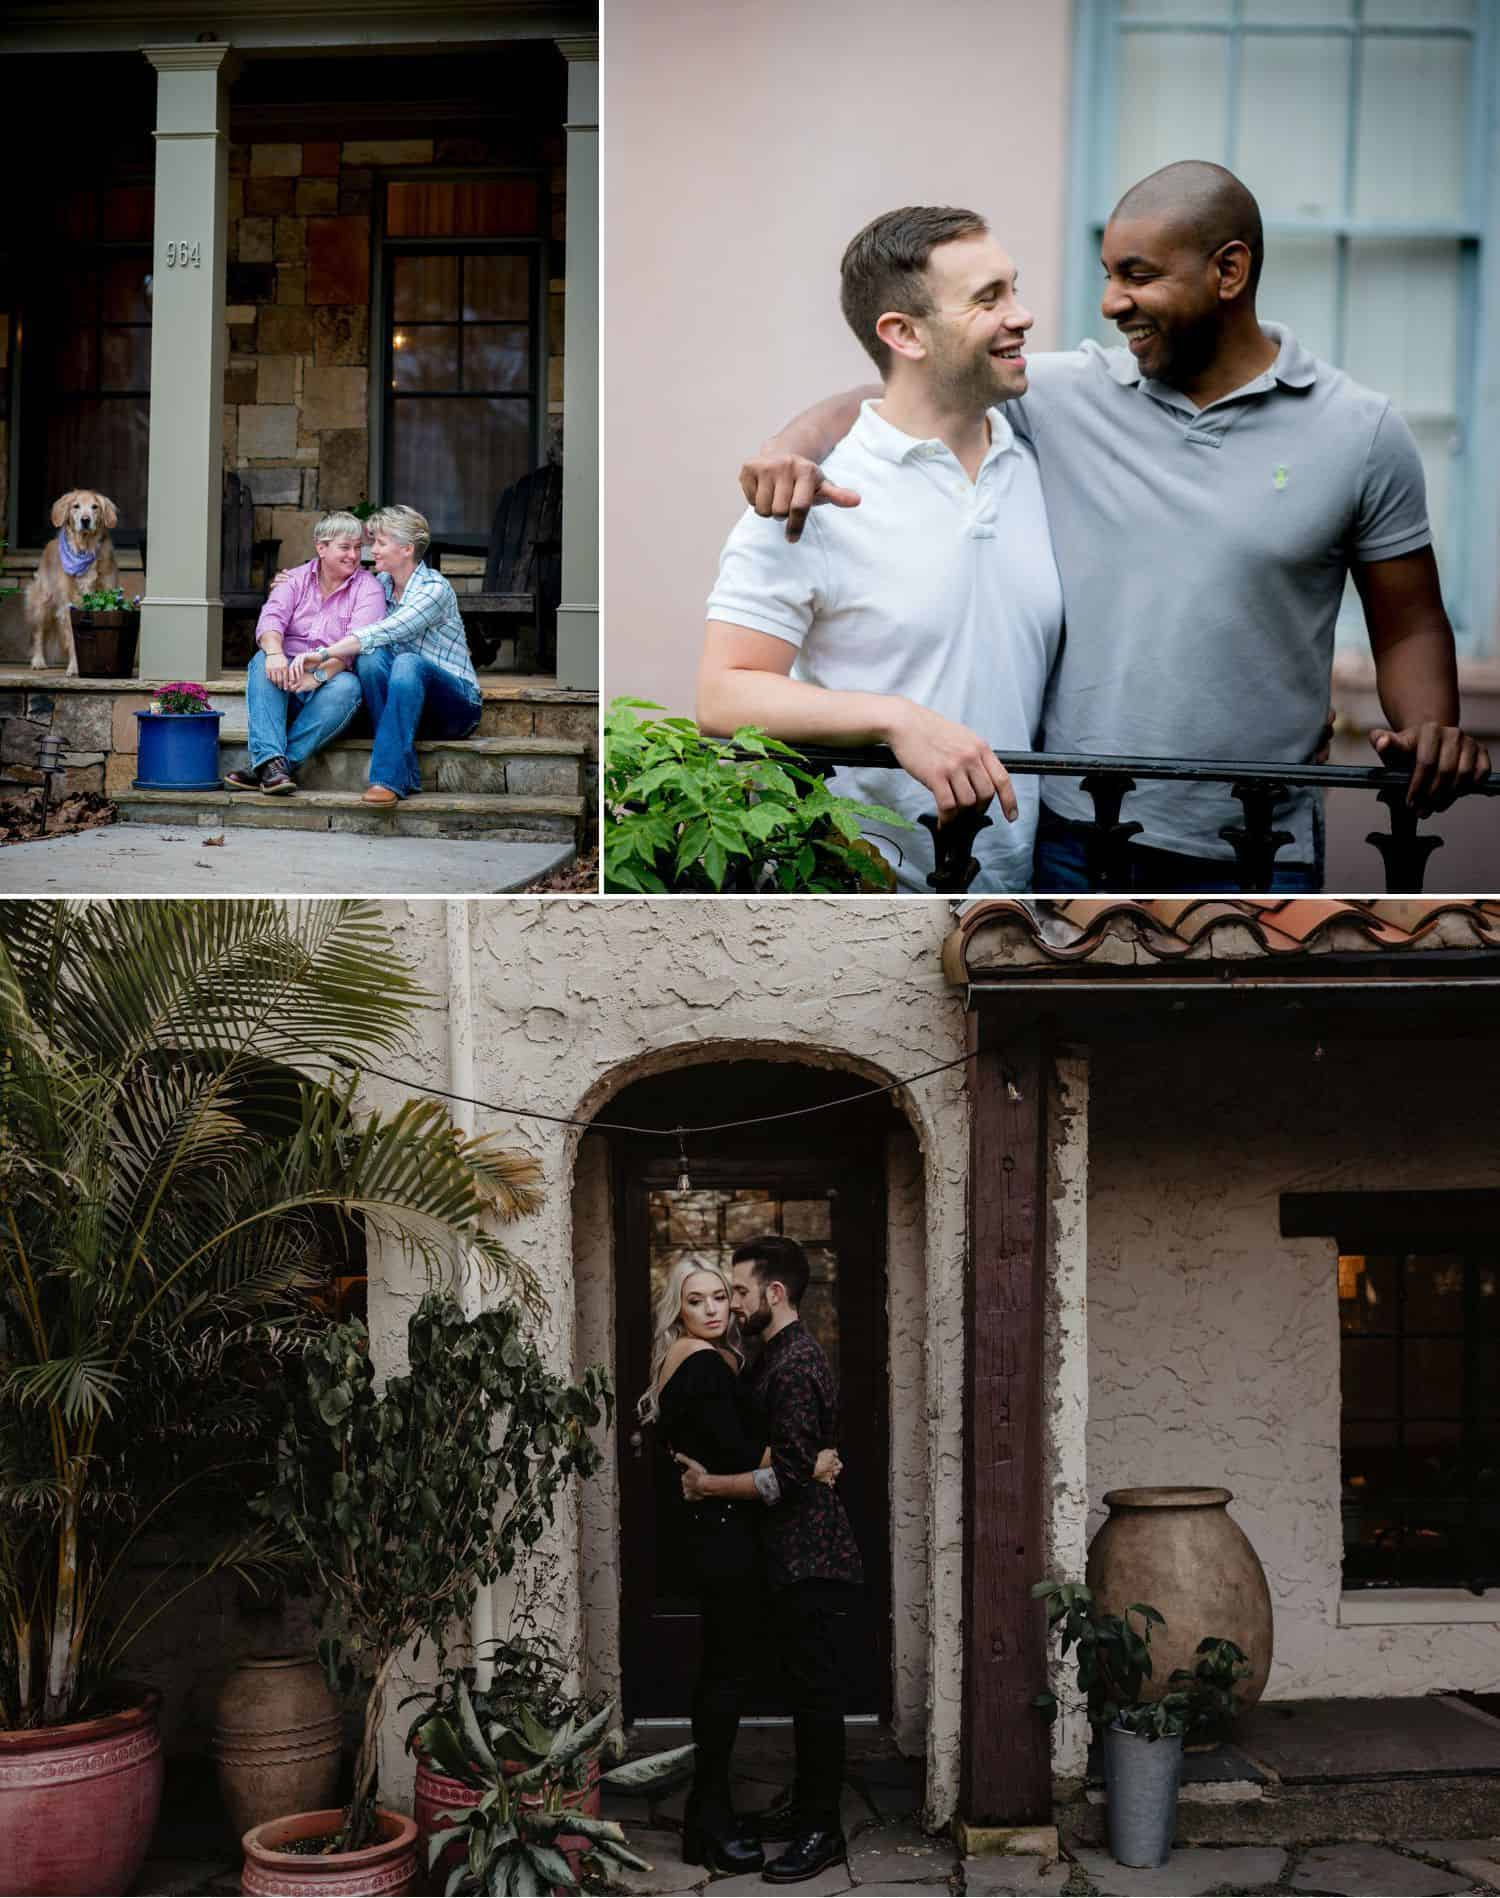 Photograph engaged couples in front of their home to commemorate their first home together